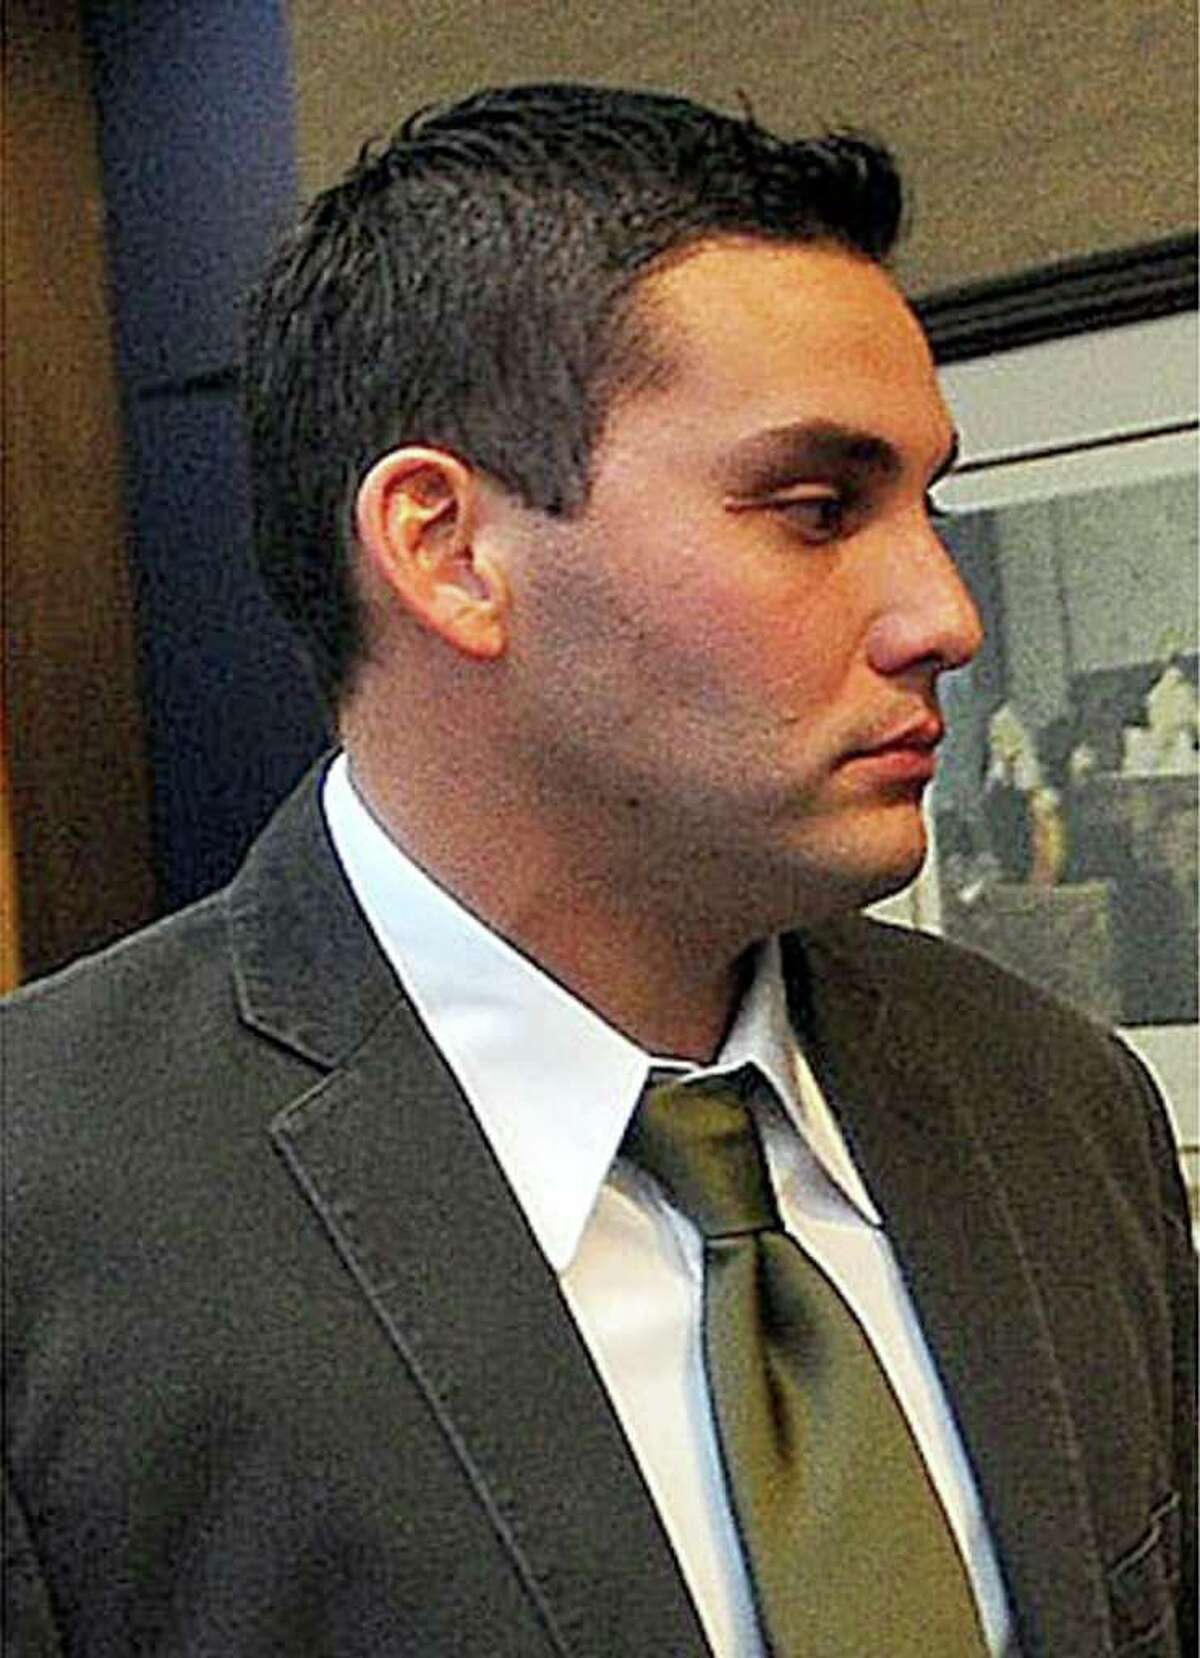 James Cody Guedry is the second Beaumont police officer to stand trial for official oppression against Derrick Newman. Guedry is said to have used a Taser on Newman two times during the videotaped incident that occurred Aug. 24, 2007.